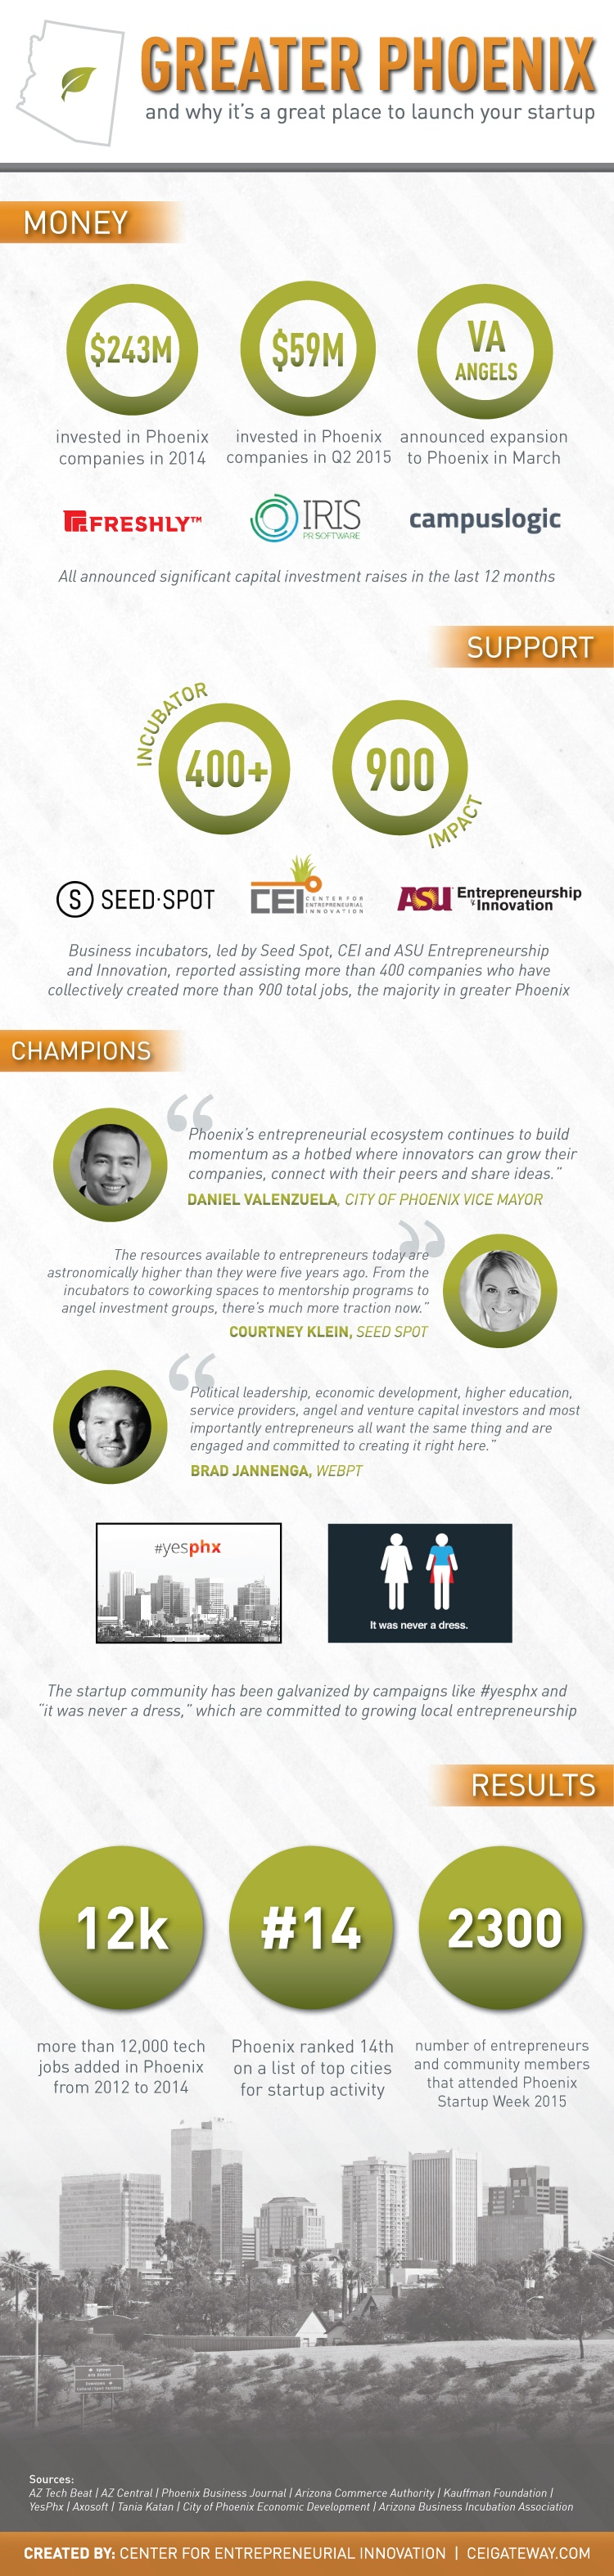 Phoenix-the-place-for-Startups-Infographic.jpg